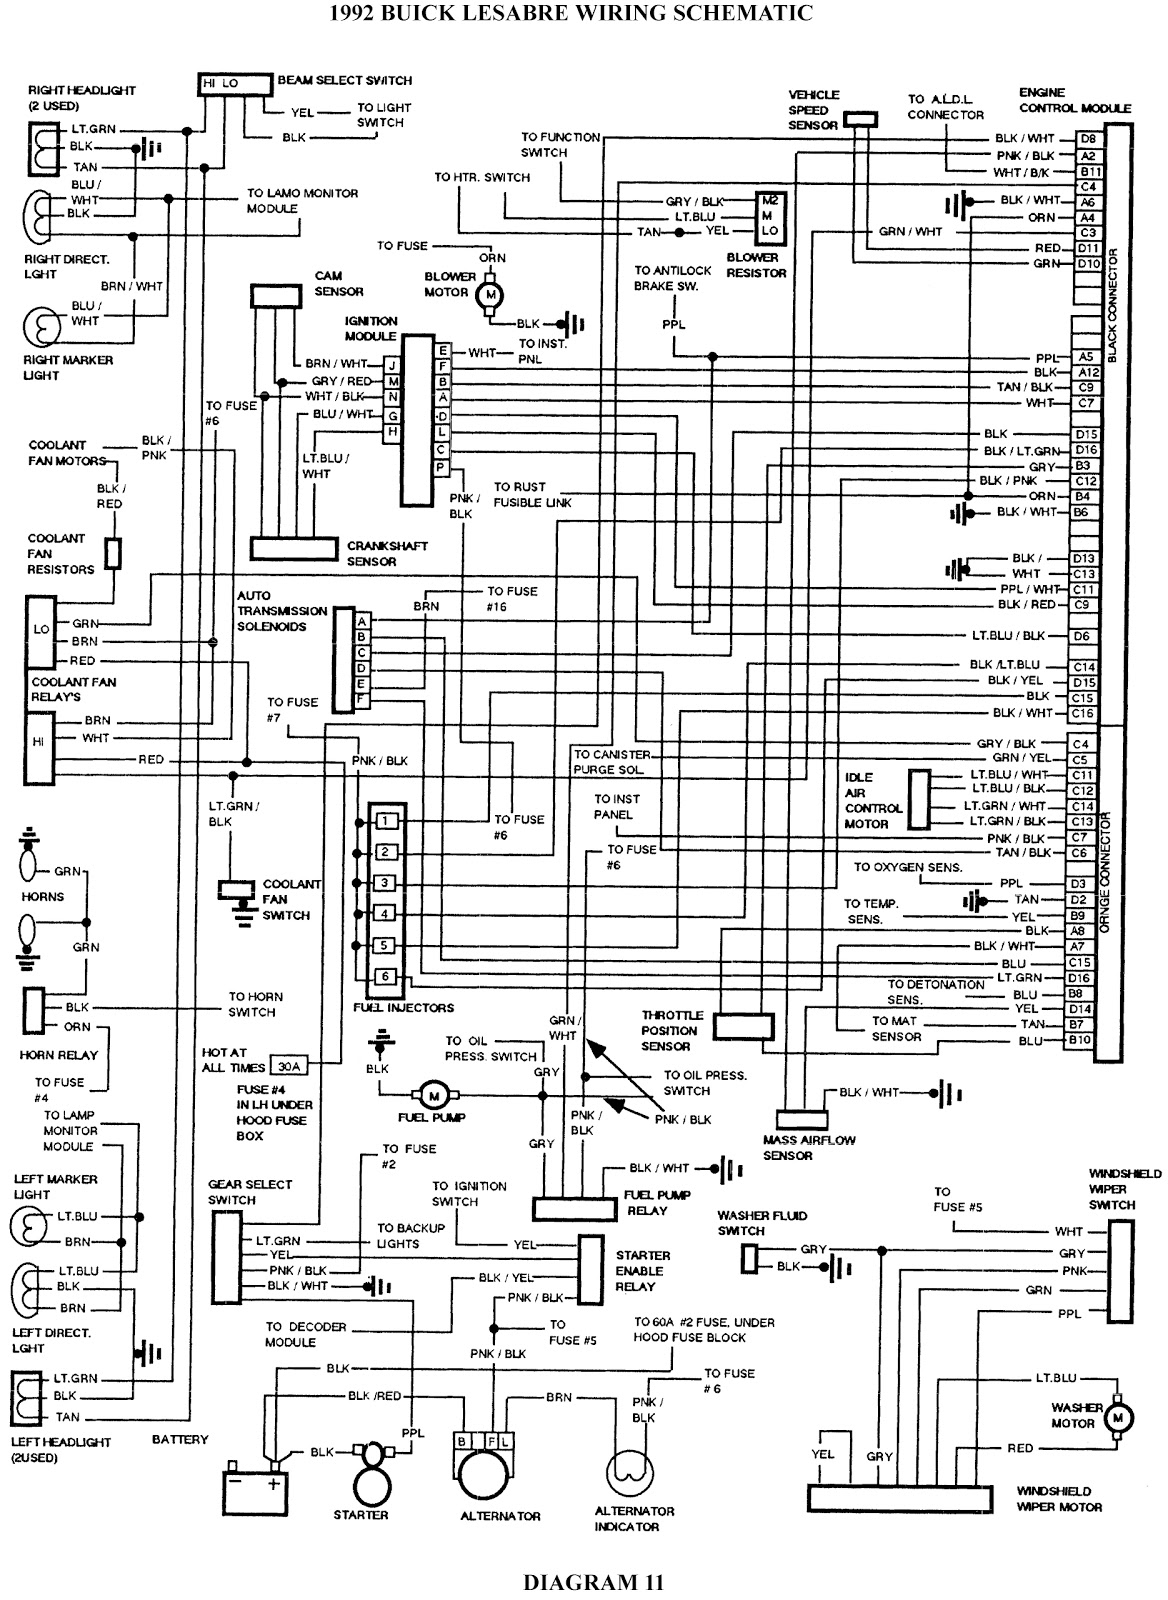 wiring diagram further 92 buick roadmaster fuel pump fuse diagram 91 buick roadmaster fuse panel diagram [ 1168 x 1600 Pixel ]